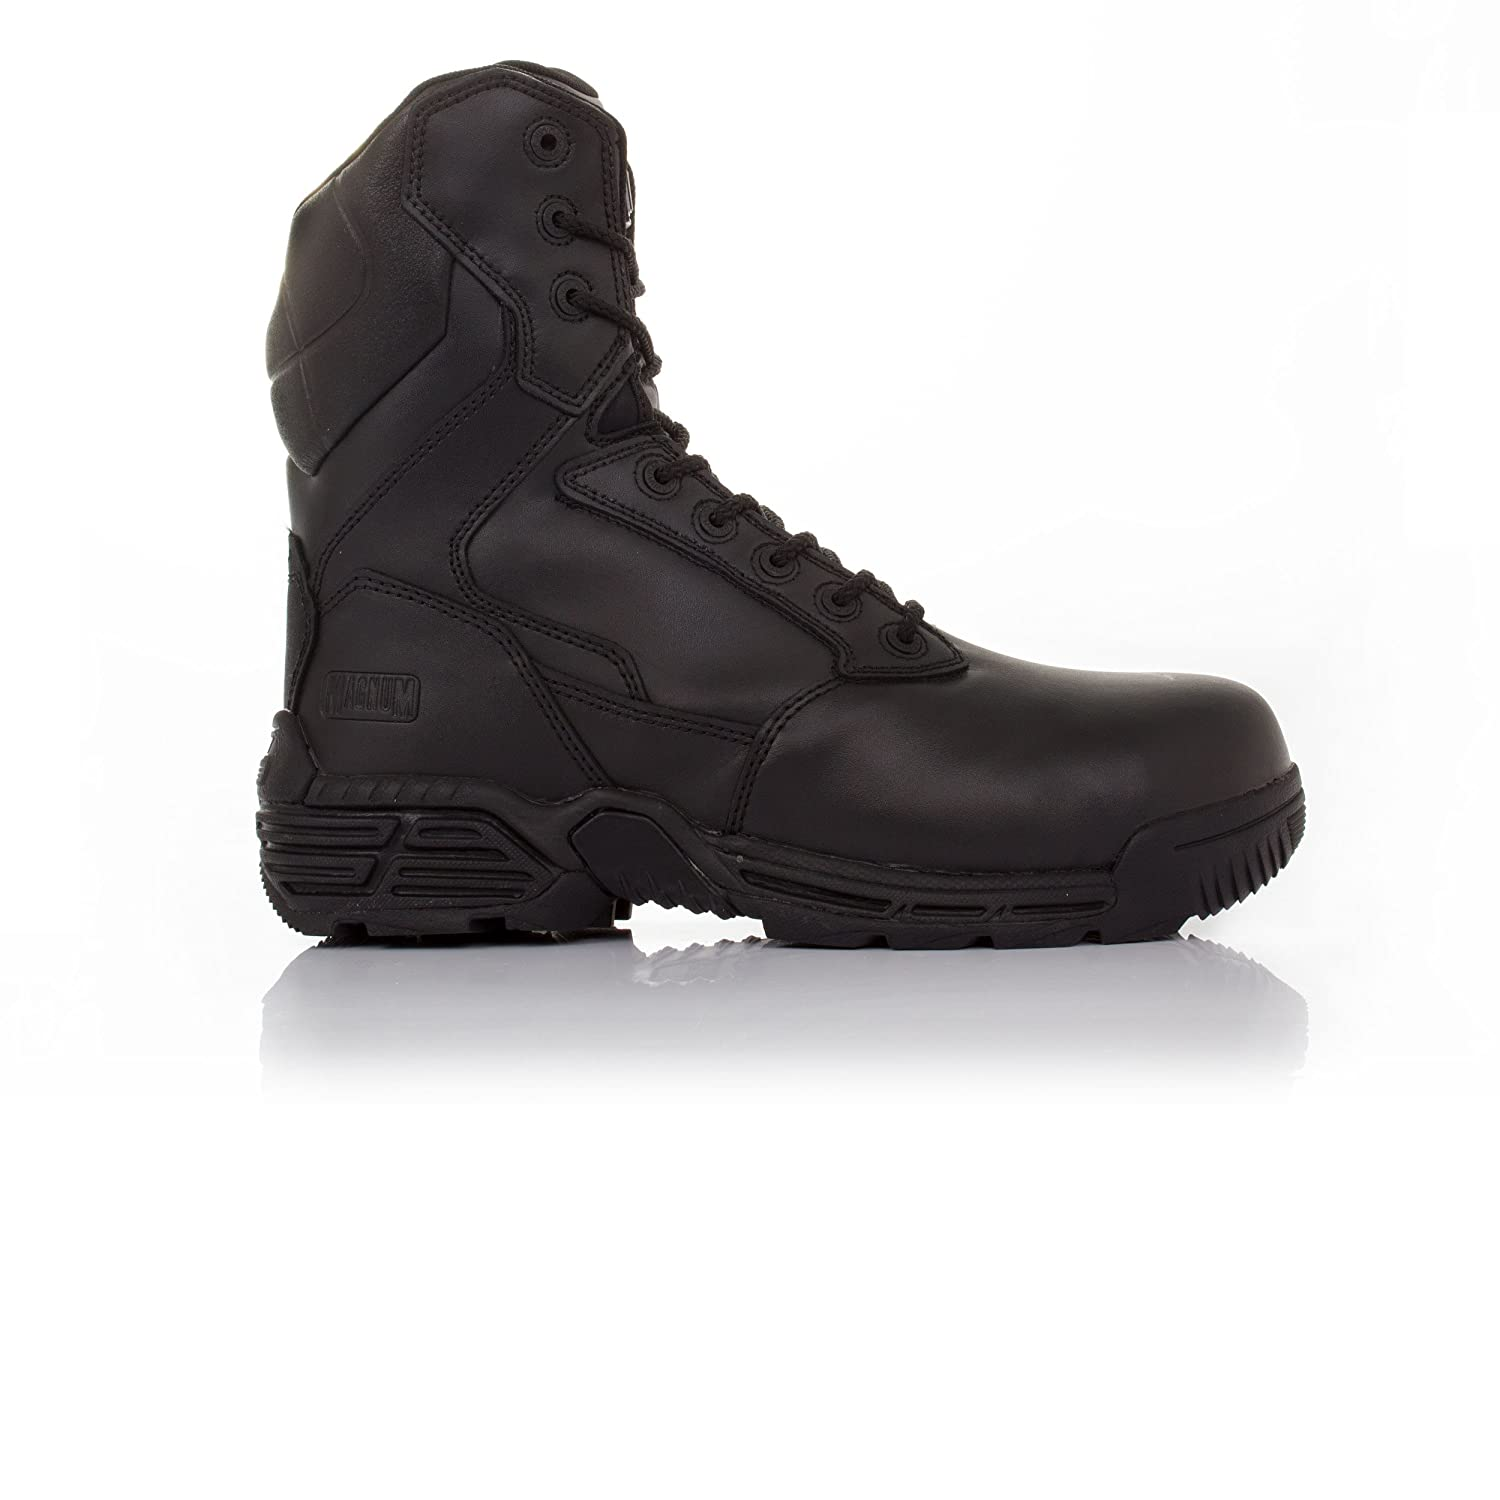 Magnum Magnum Magnum Stealth Force 8.0 Leather CT CP Wandern Stiefel bea2bf